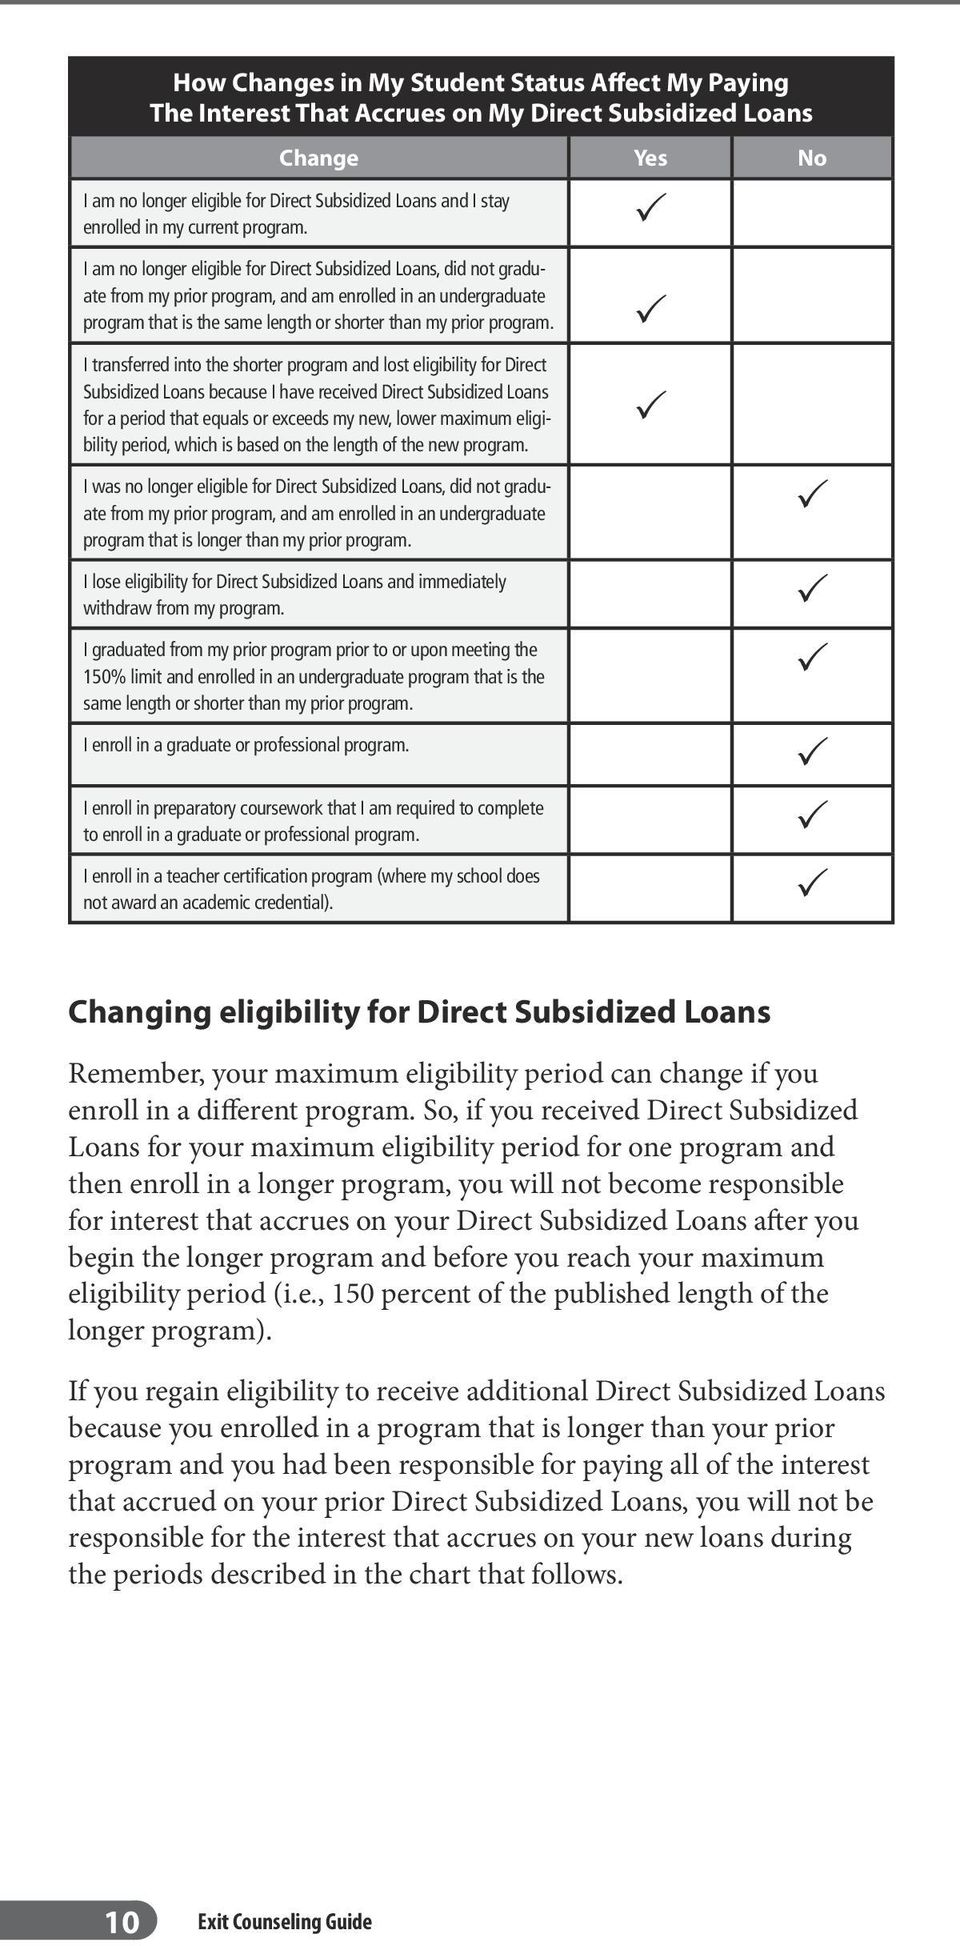 I am no longer eligible for Direct Subsidized Loans, did not graduate from my prior program, and am enrolled in an undergraduate program that is the same length or shorter than my prior program.